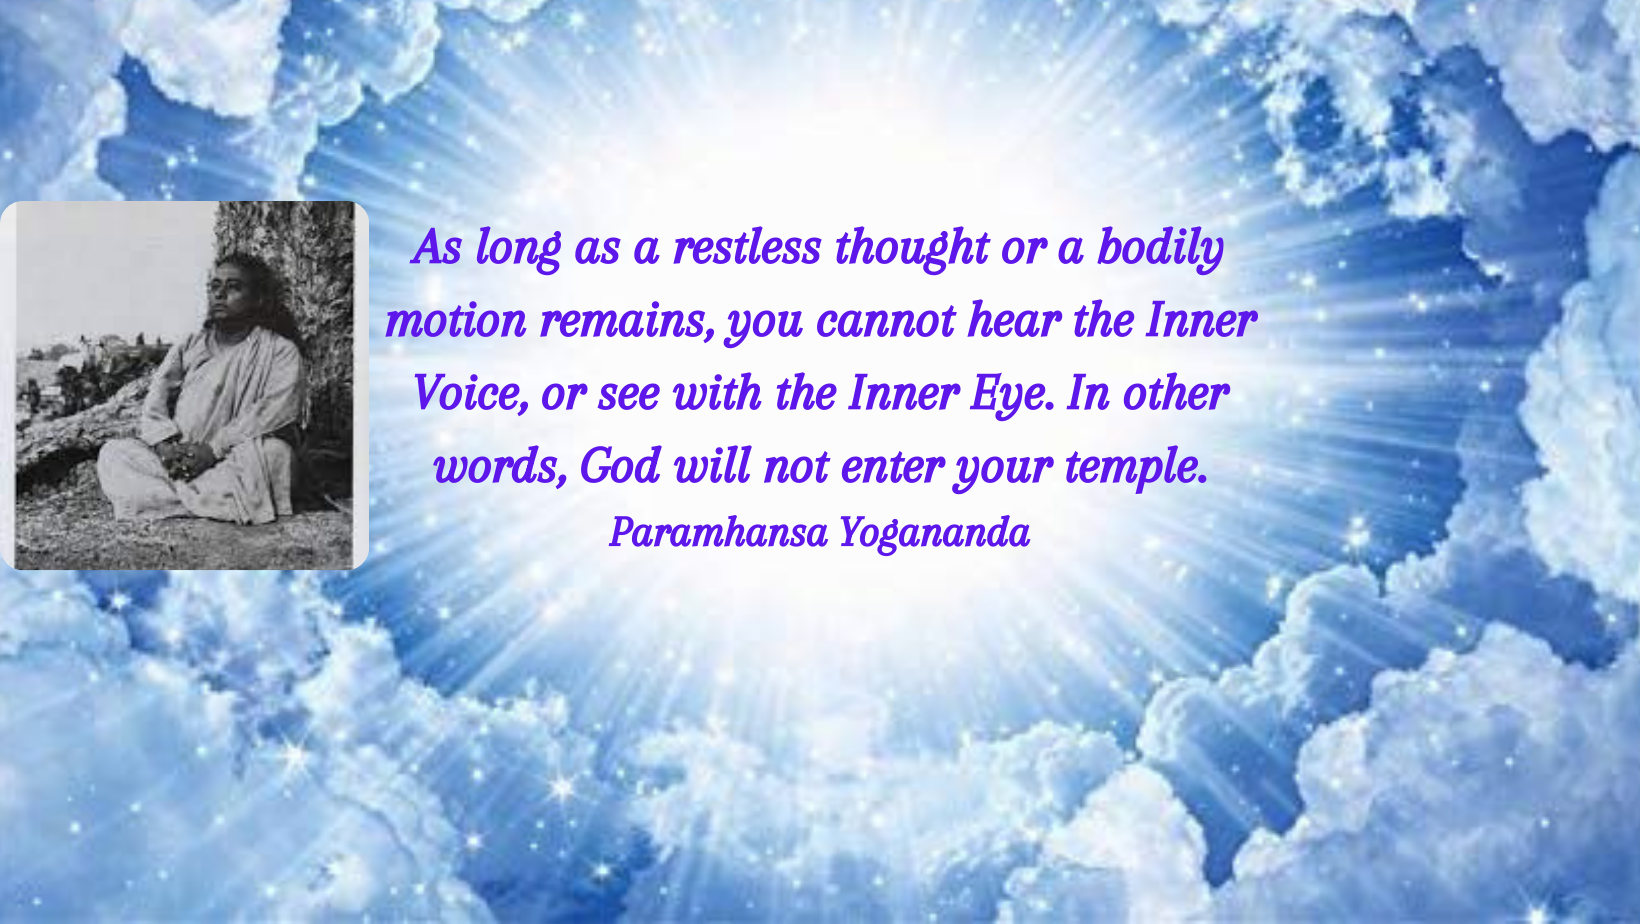 As long as a restless thought or a bodily motion remains, you cannot hear the Inner Voice, or see with the Inner Eye. In other words, God will not enter your temple. Paramhansa Yogananda